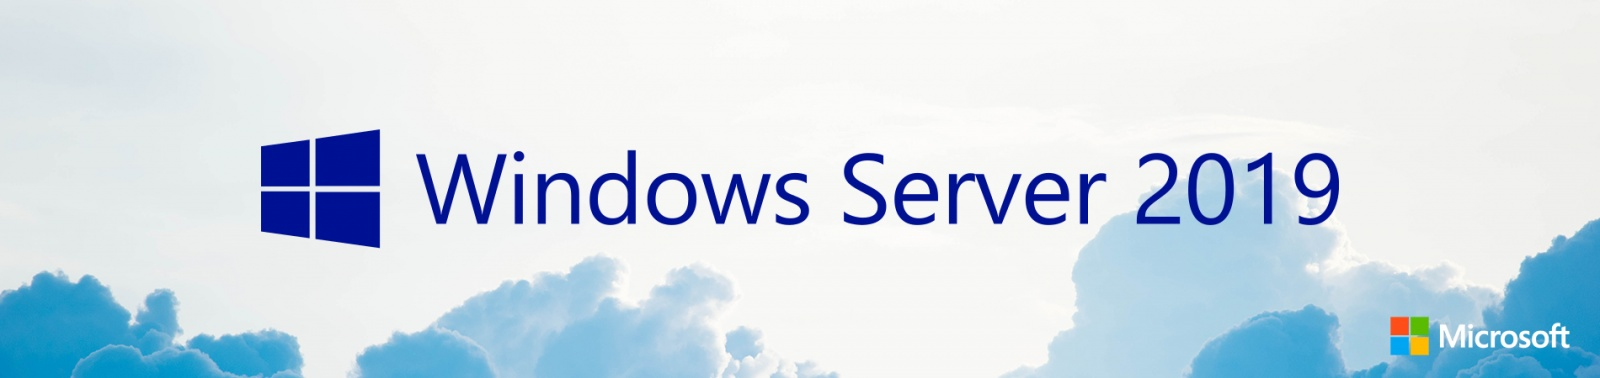 Windows Server 2019 - 1